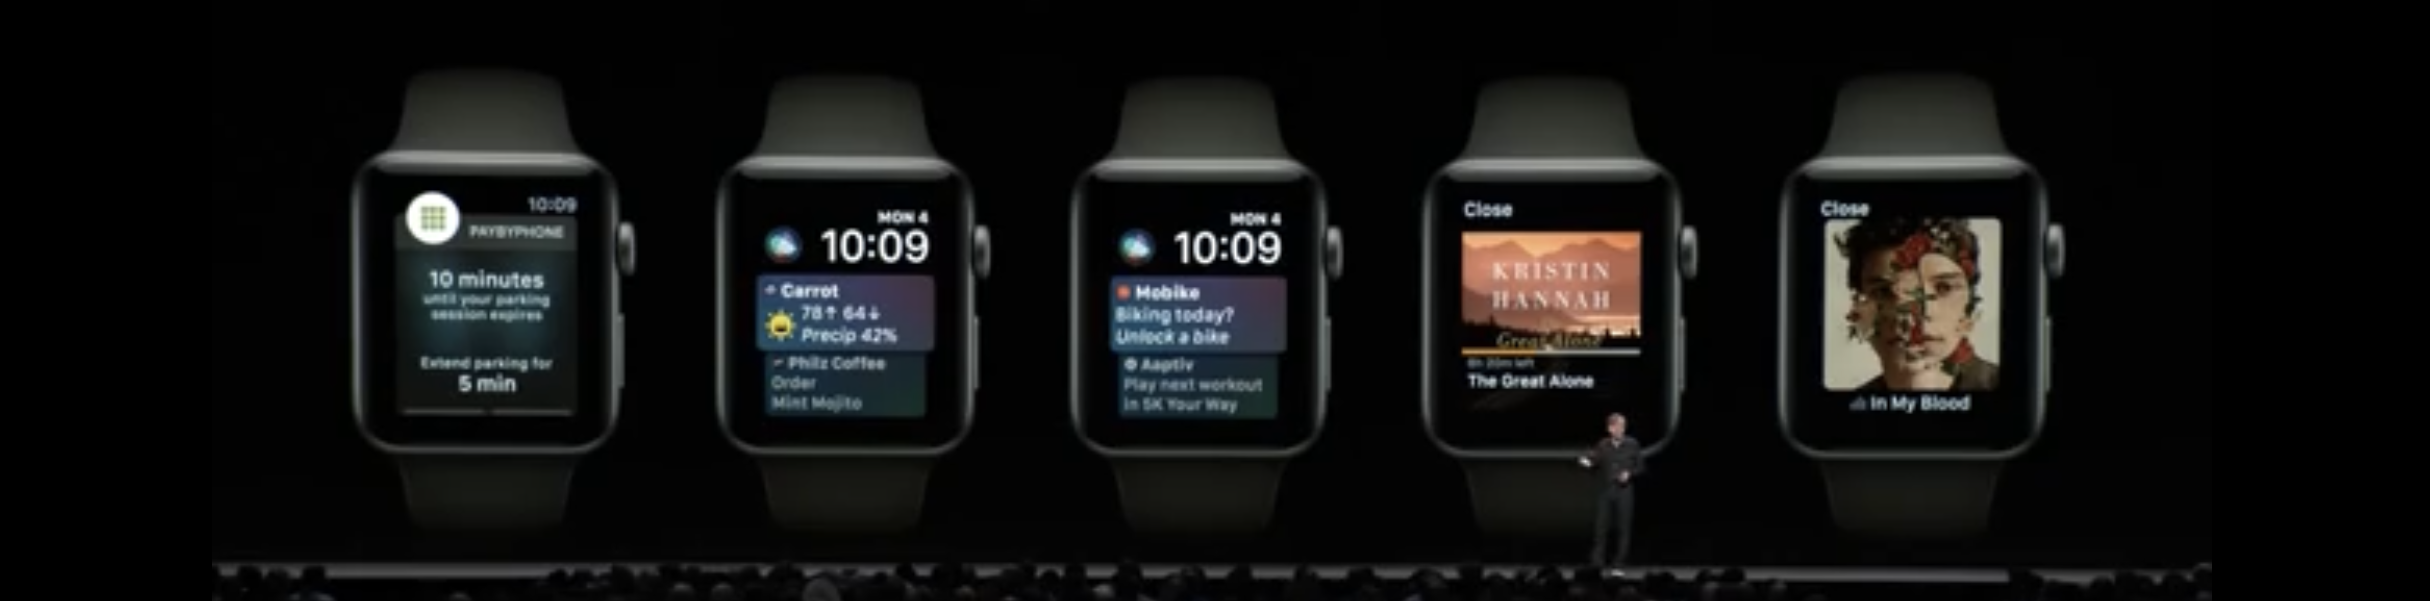 /is-apple-furthering-the-smartphone-disintegration-with-watchos-5-3a2e9dfaf70b feature image